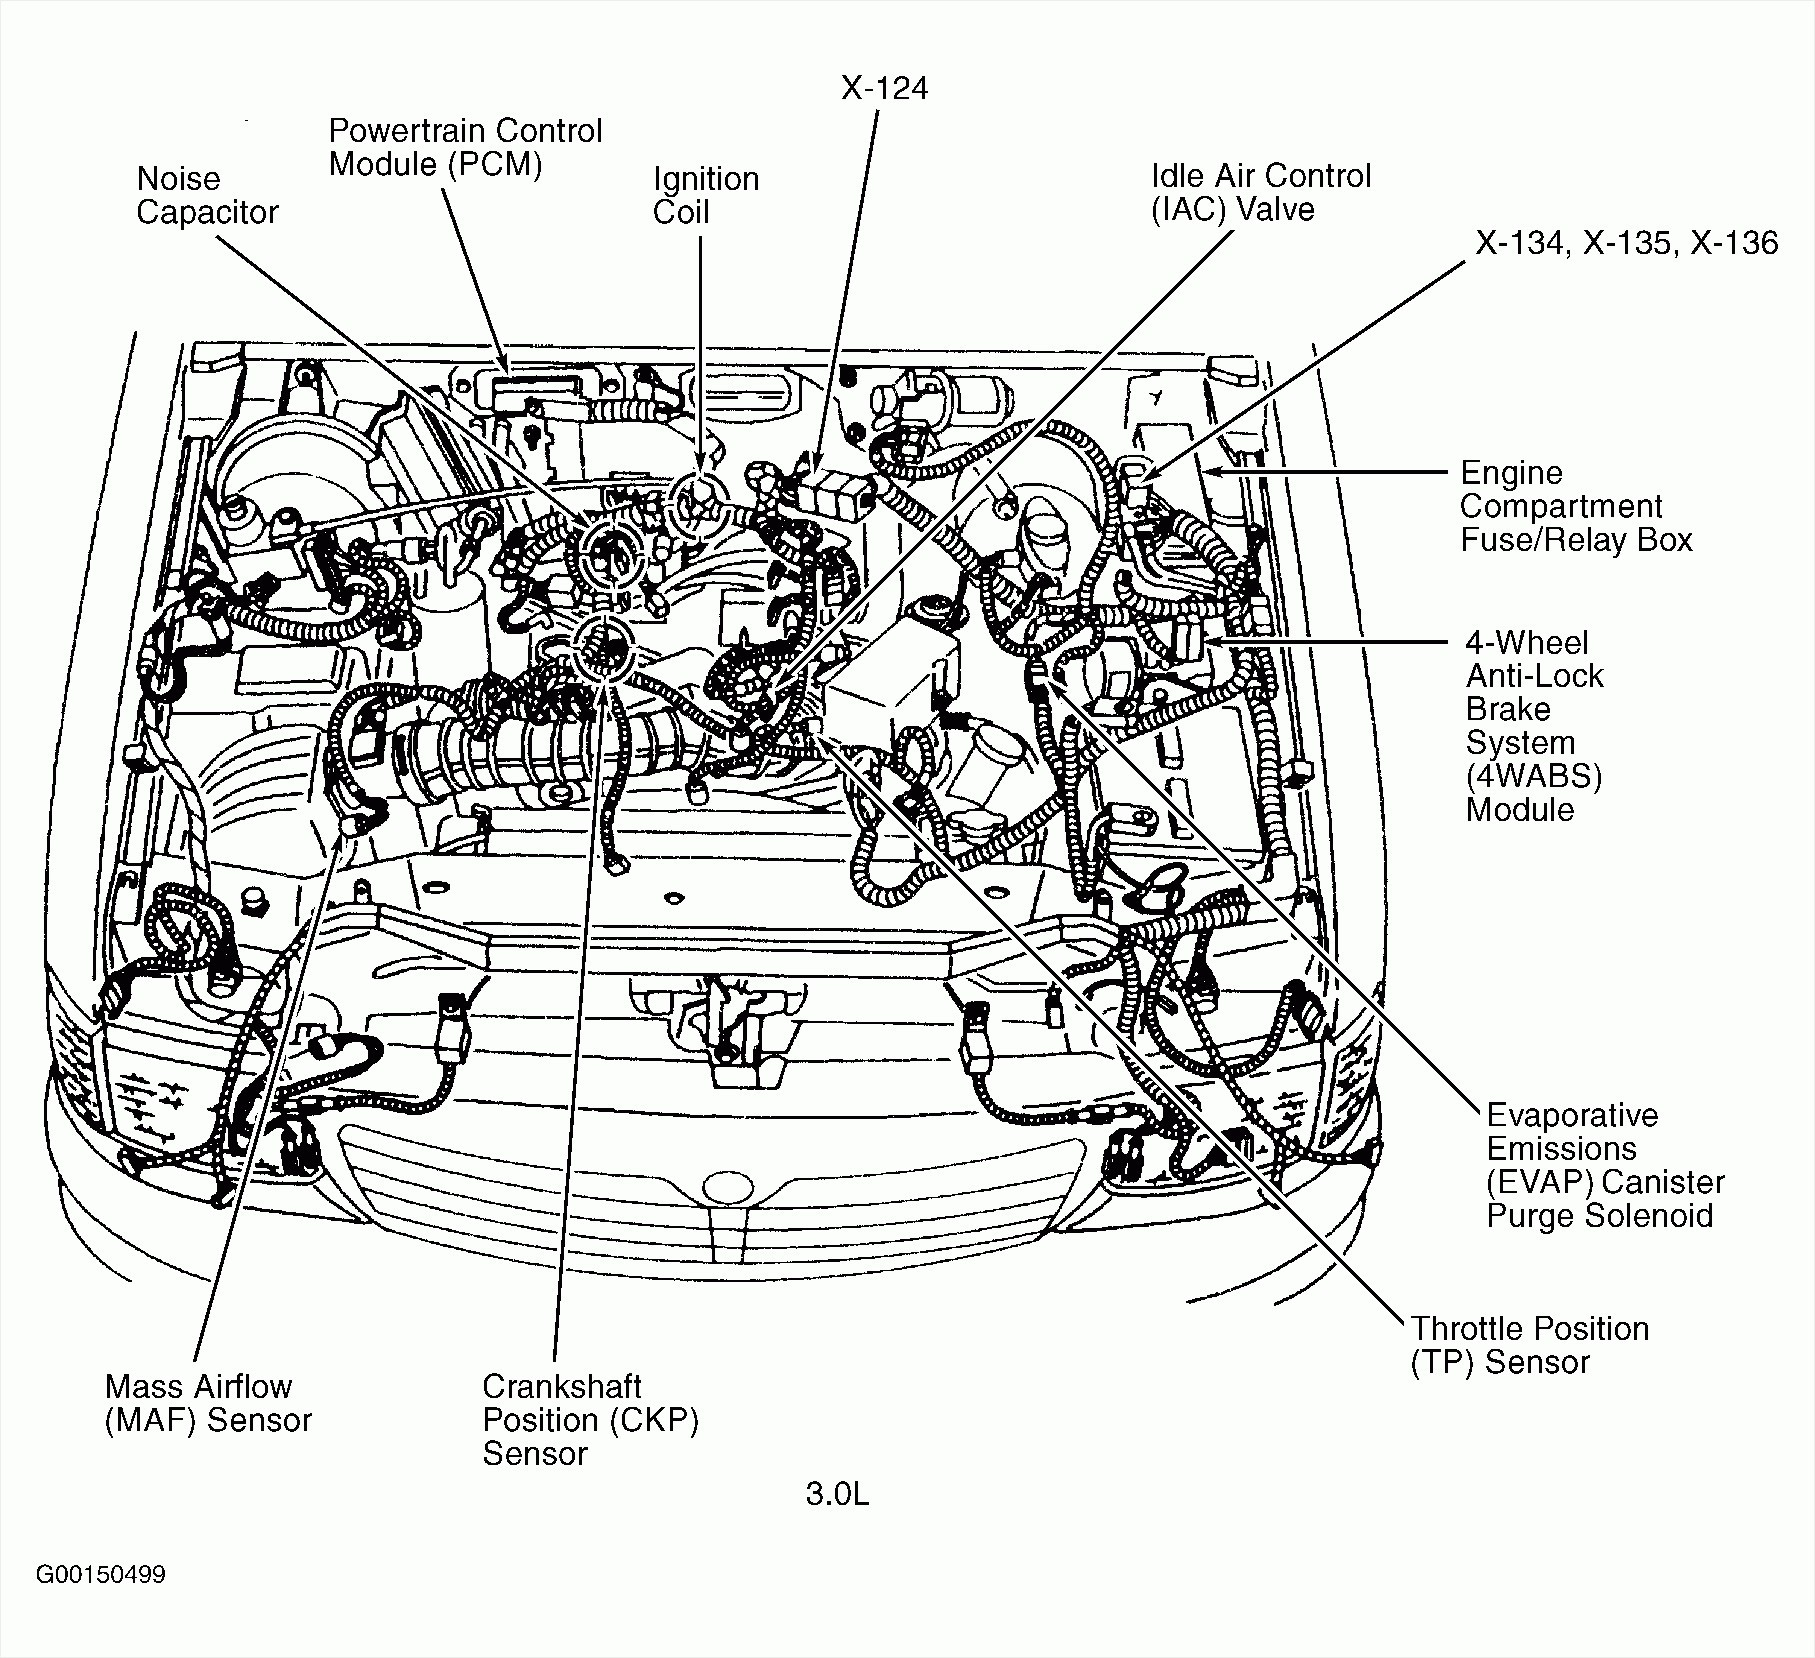 2006 ford 3 0 engine diagram wiring diagram gp3 0l ohv engine diagram wiring diagram experts 2006 ford 3 0 engine diagram